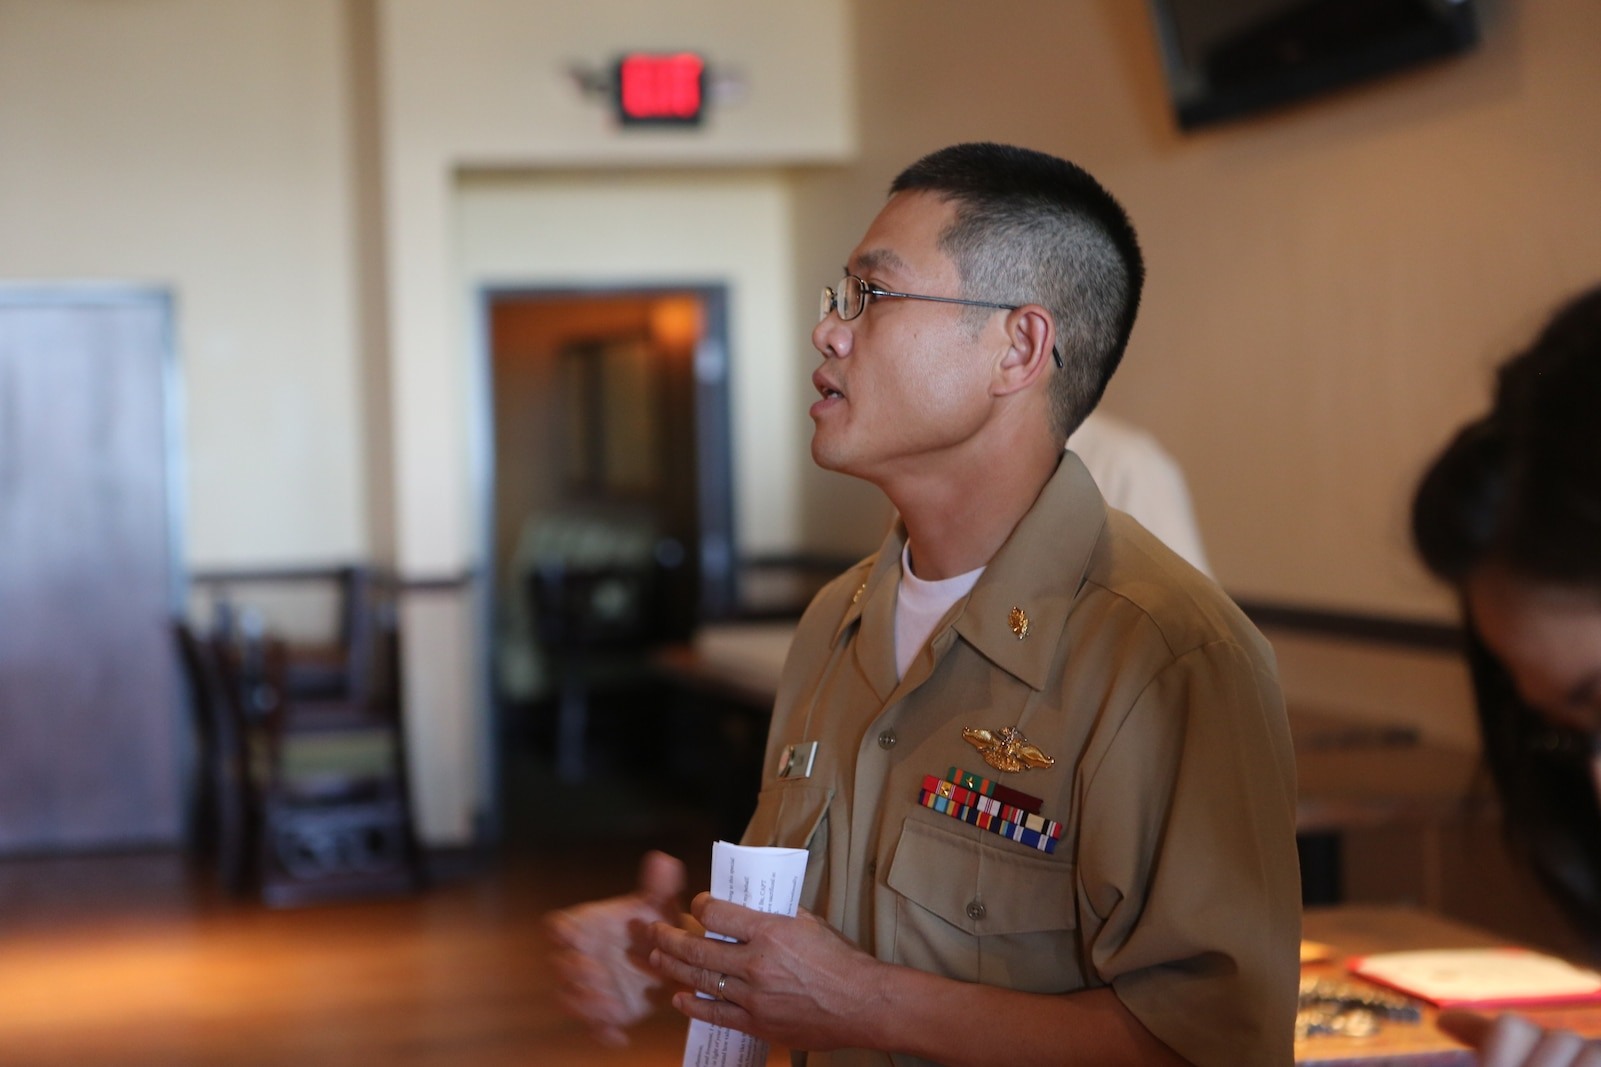 """Lt. Cmdr. Vinh T. Ton, dentist for 1st Dental Battalion, speaks after receiving the Weedon E. Osborne Award following a ceremony at Pacific Views Event Center aboard Camp Pendleton, Calif, March 27, 2015. The award is earned by a dental officer who makes significant contributions to operational readiness. It is presented annually by the Marine Corps Association. The award is named in honor of Lt. j.g. Weedon E. Osborne, Dental Corps, U.S. Navy, who was killed in action during the battle of Belleau Wood in France in 1918. """"When I reflect upon the pool of other extraordinarily dedicated and talented practitioners nominated for this award, words cannot express the depth of my humility for having been chosen for this honor,"""" said Ton. """"I would like to share the honor of this award with all those who were also nominated, truly any of you could have been selected for this award."""""""